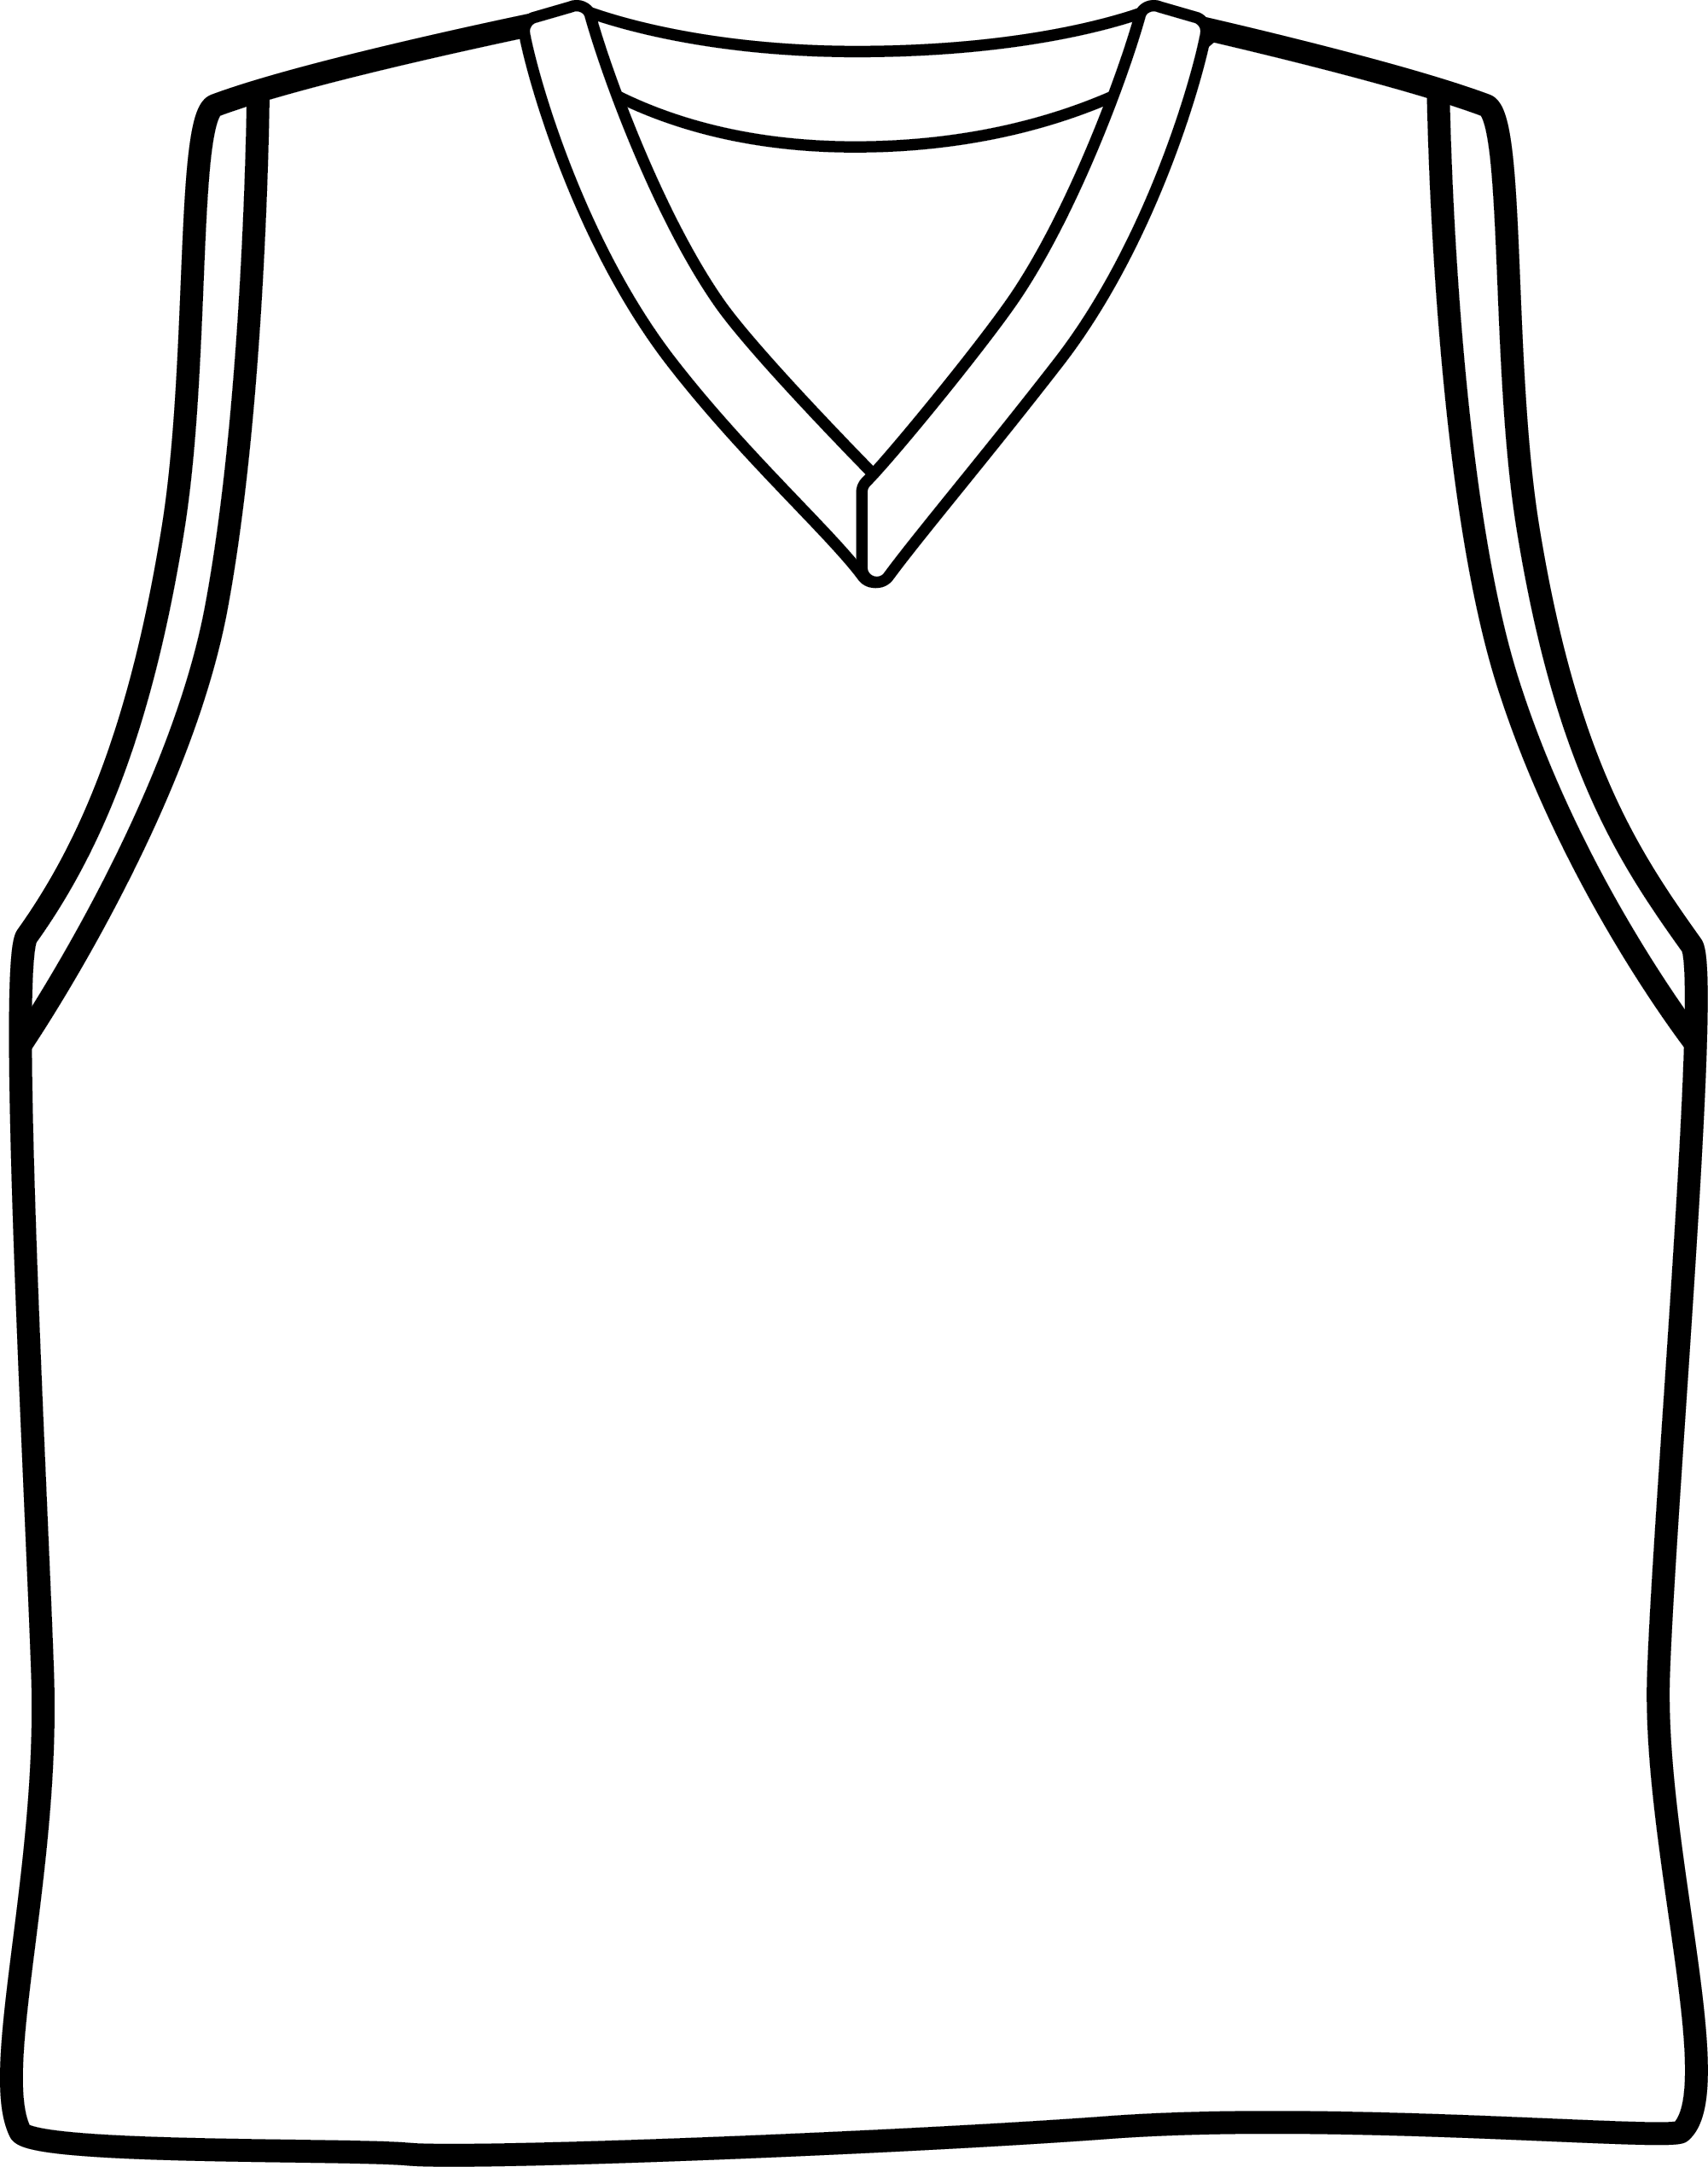 Black Basketball Jersey Clipart.